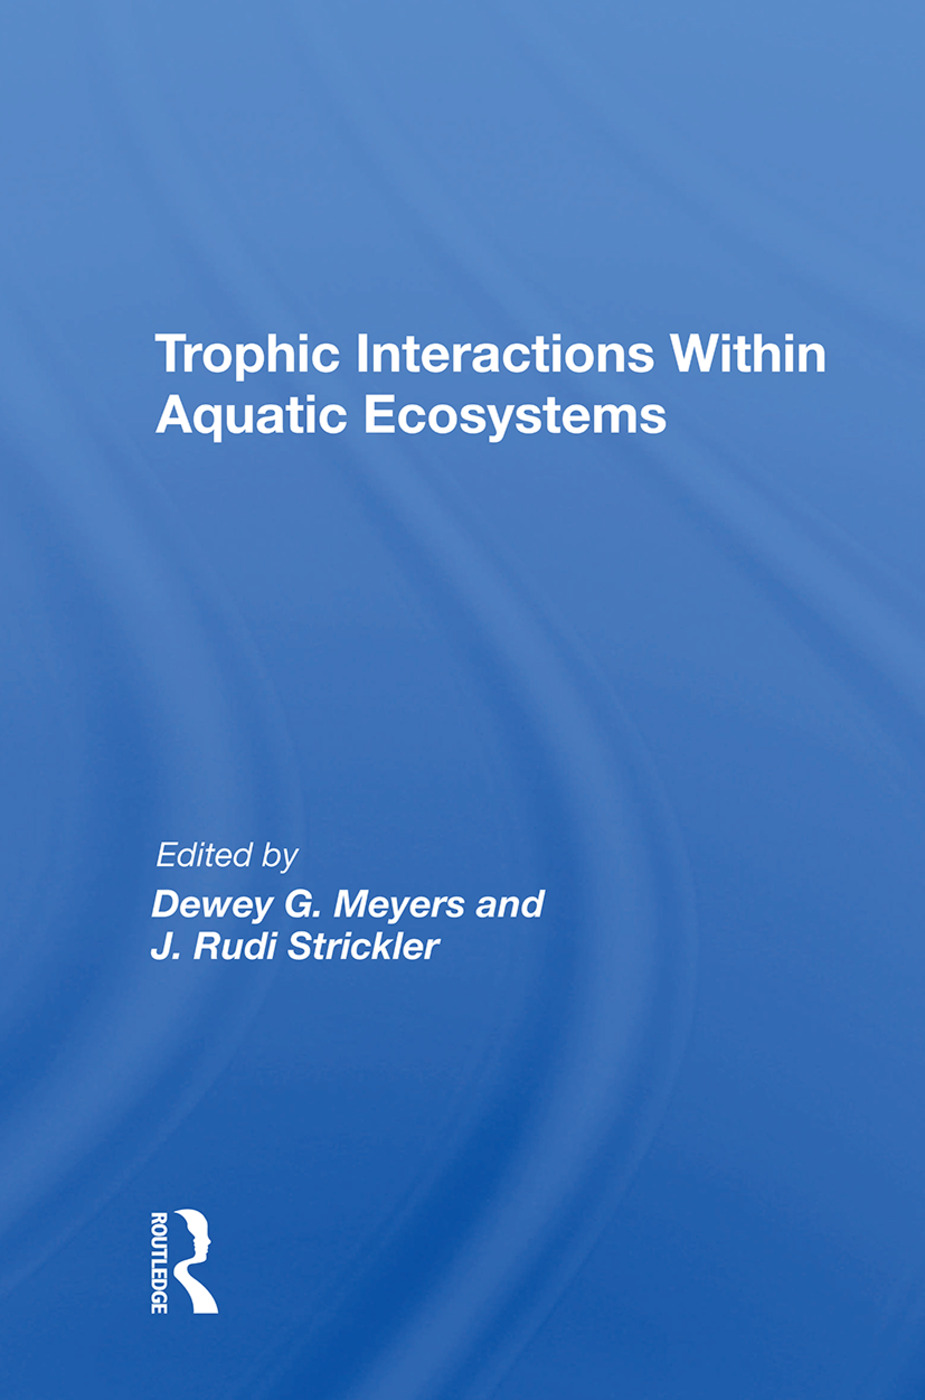 Trophic Interactions Within Aquatic Ecosystems book cover